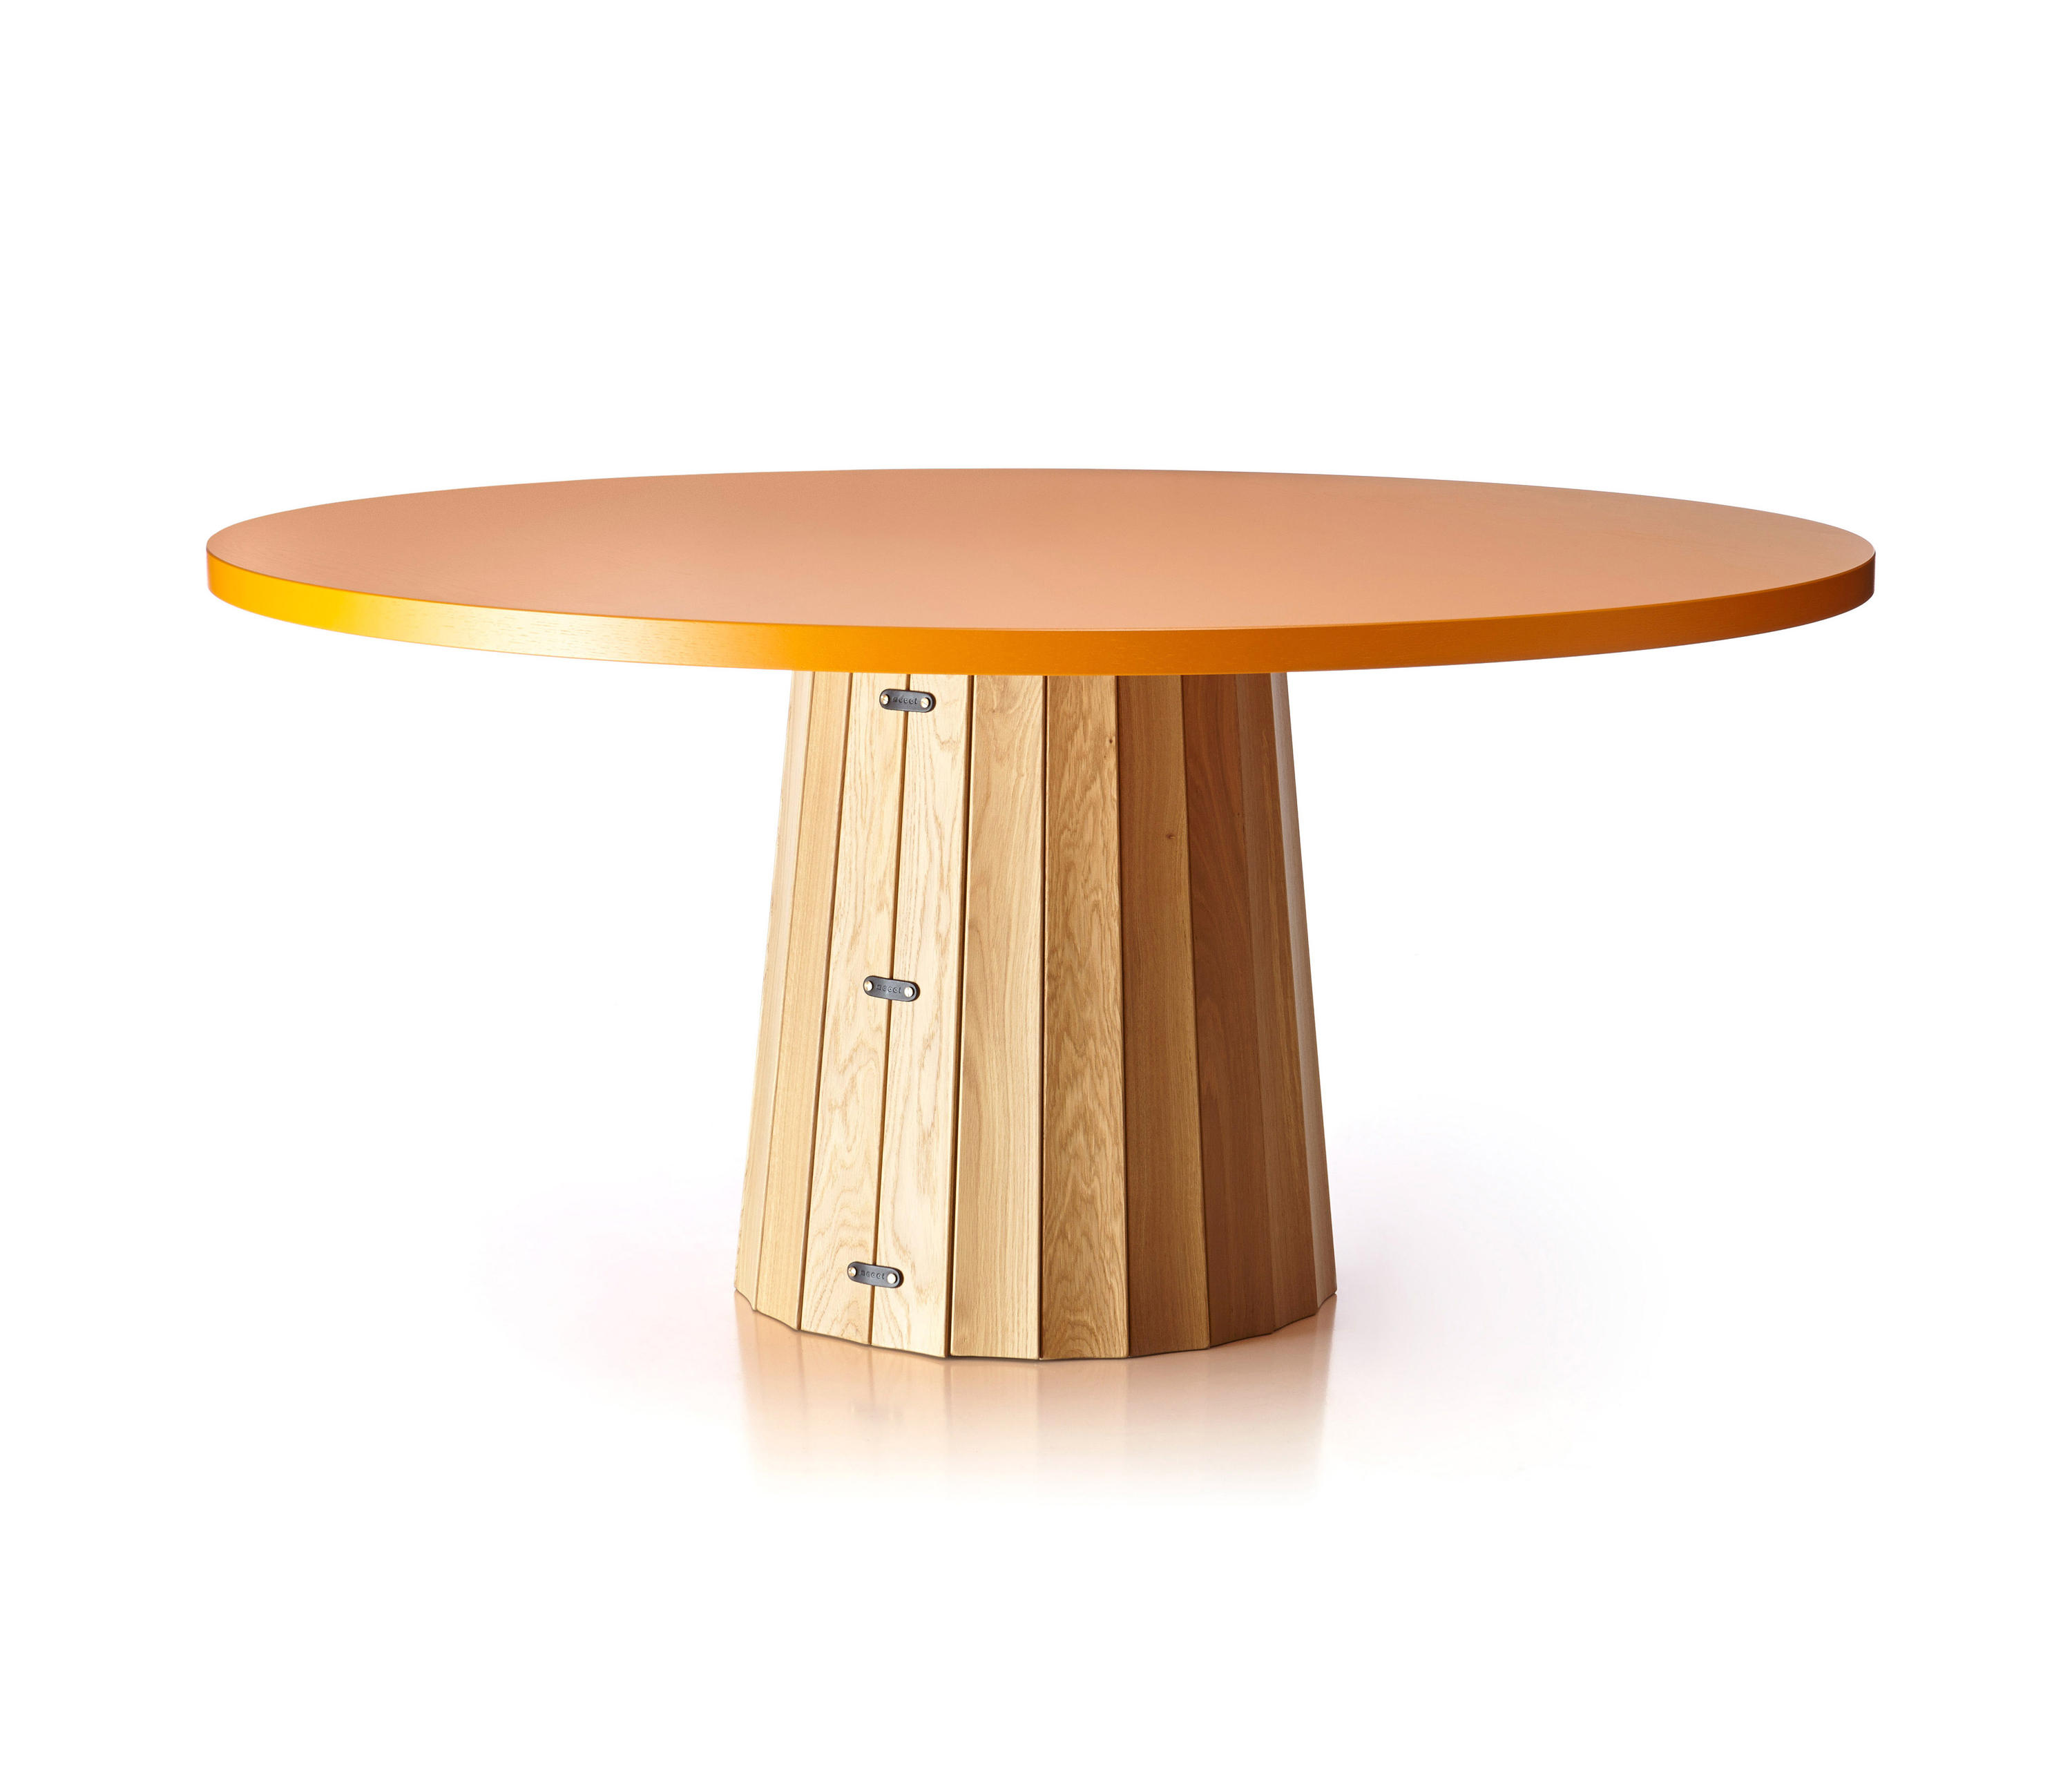 container table bodhi with linoak top restaurant tables from moooi architonic. Black Bedroom Furniture Sets. Home Design Ideas